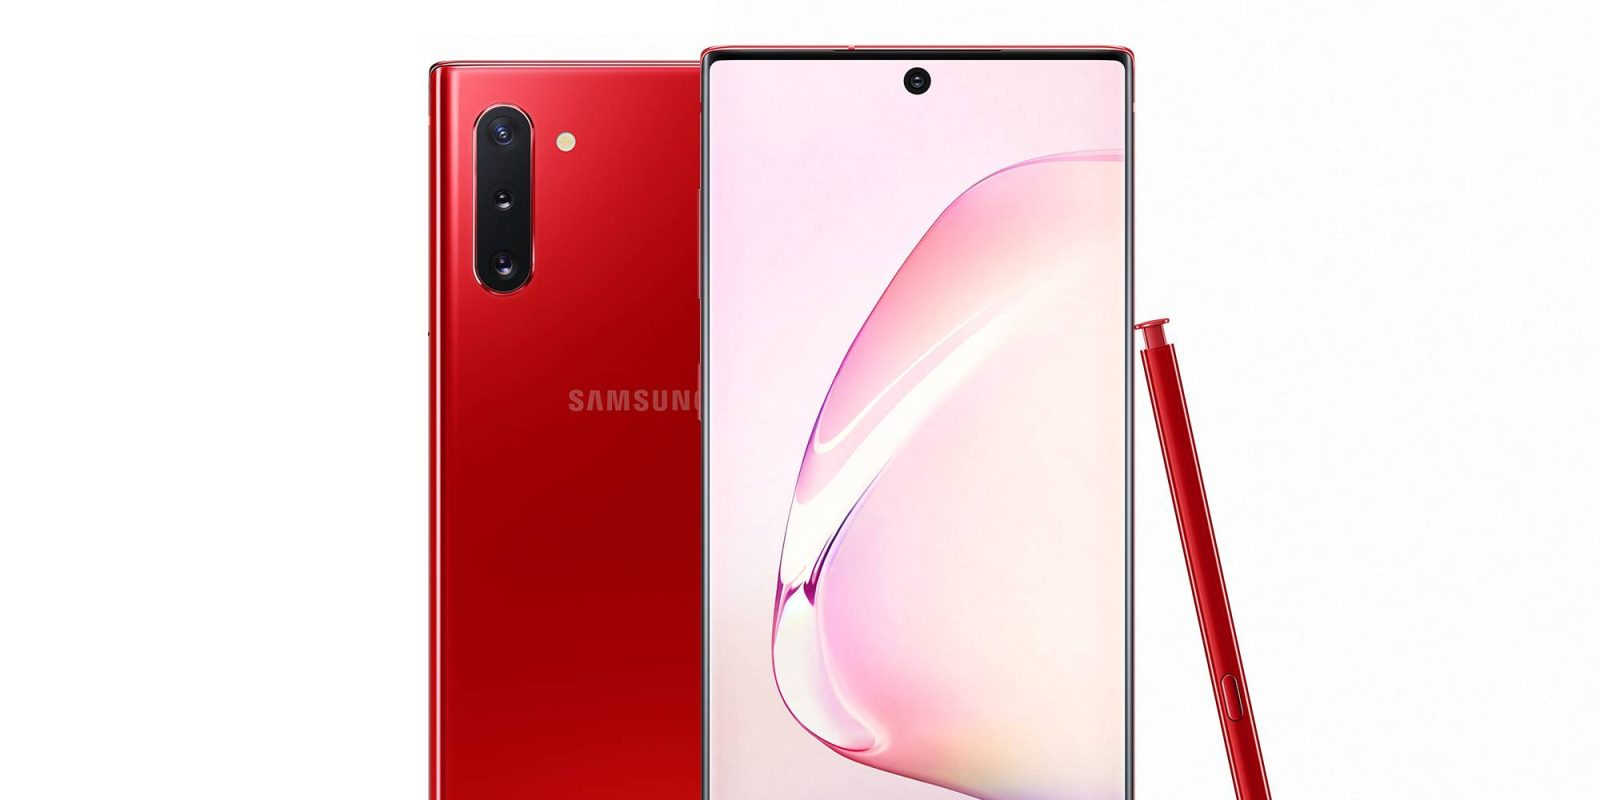 Galaxy Note 10 gets red and pink variants in US, $309 w/ Black Friday trade-in